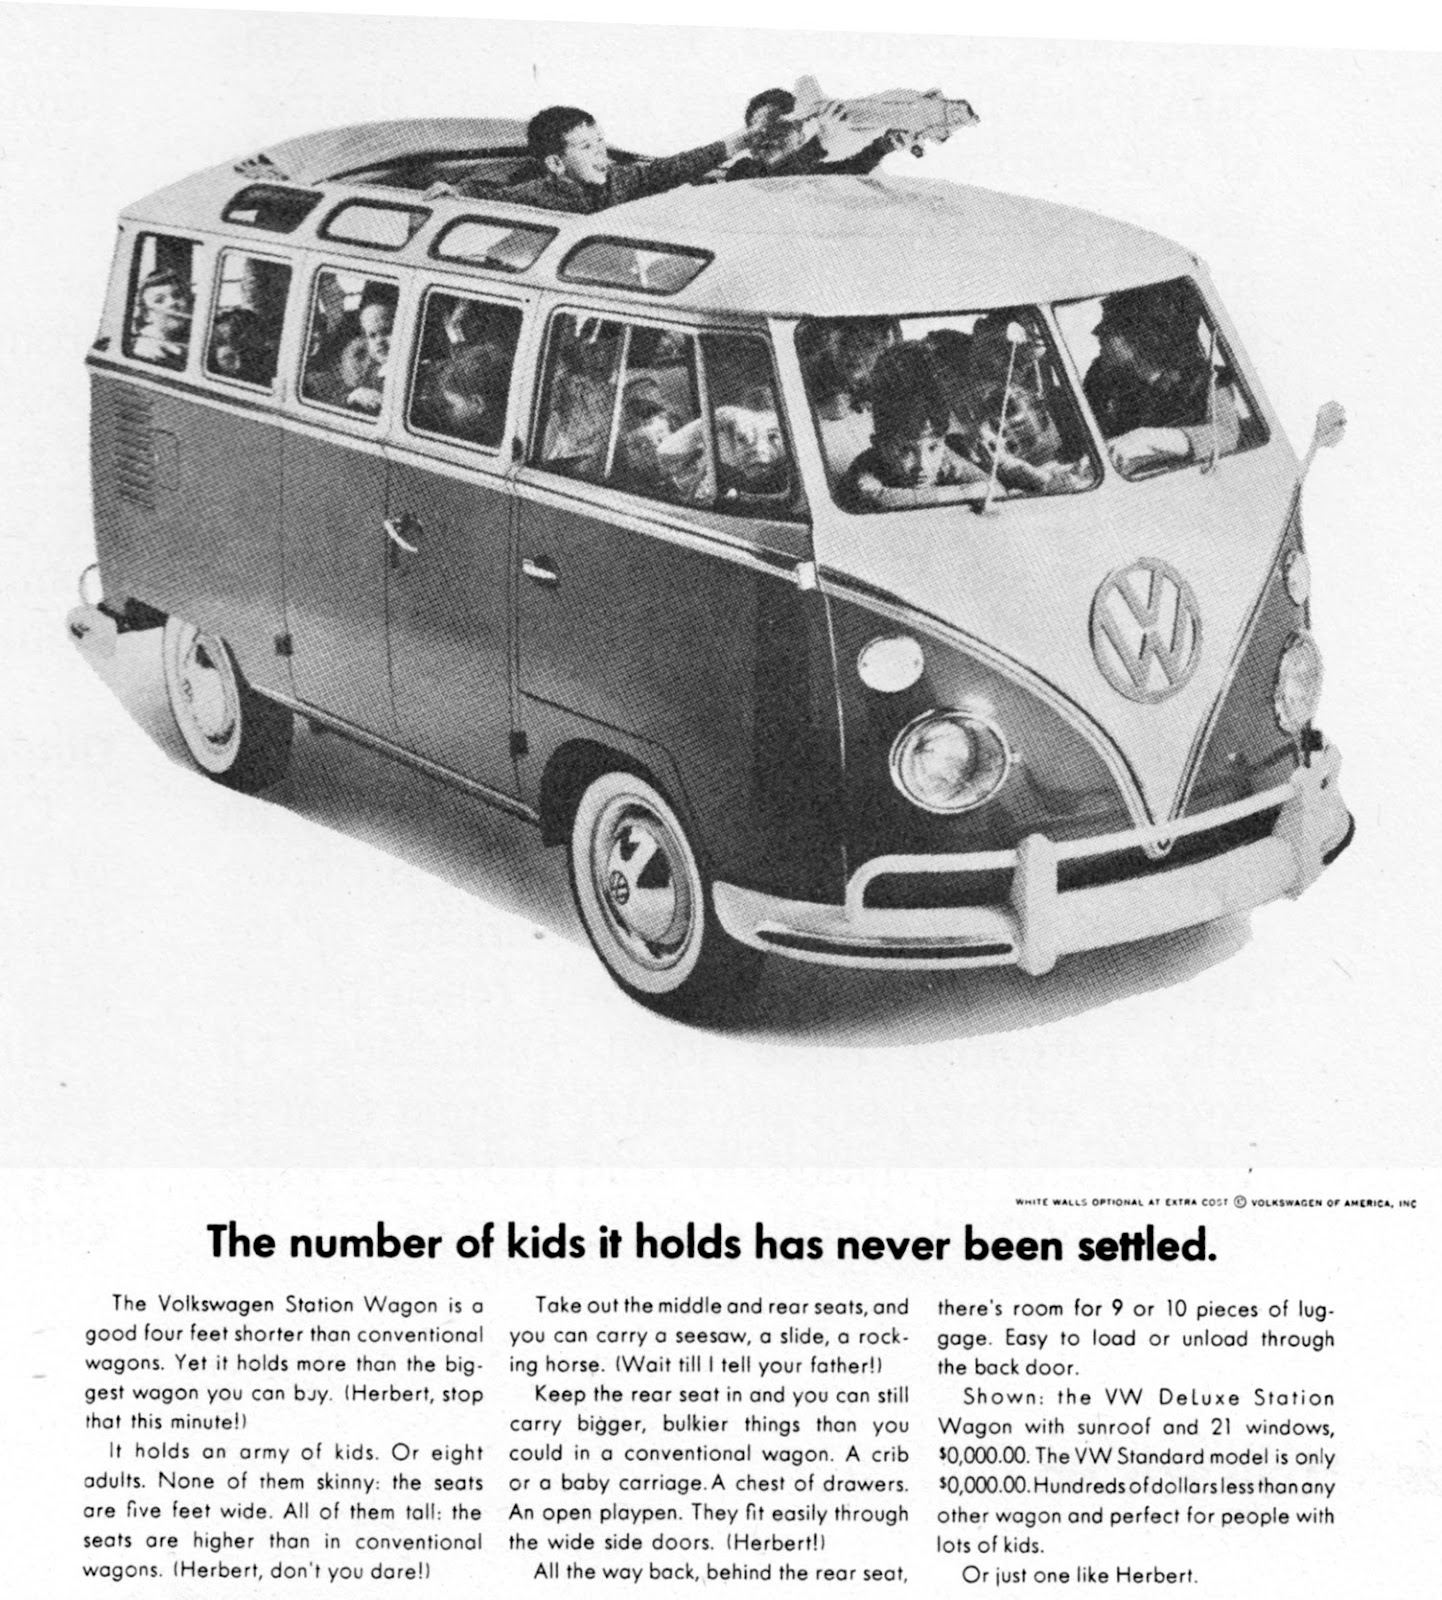 Vw 1600 Wagon: Progress Is Fine, But It's Gone On For Too Long.: It Holds